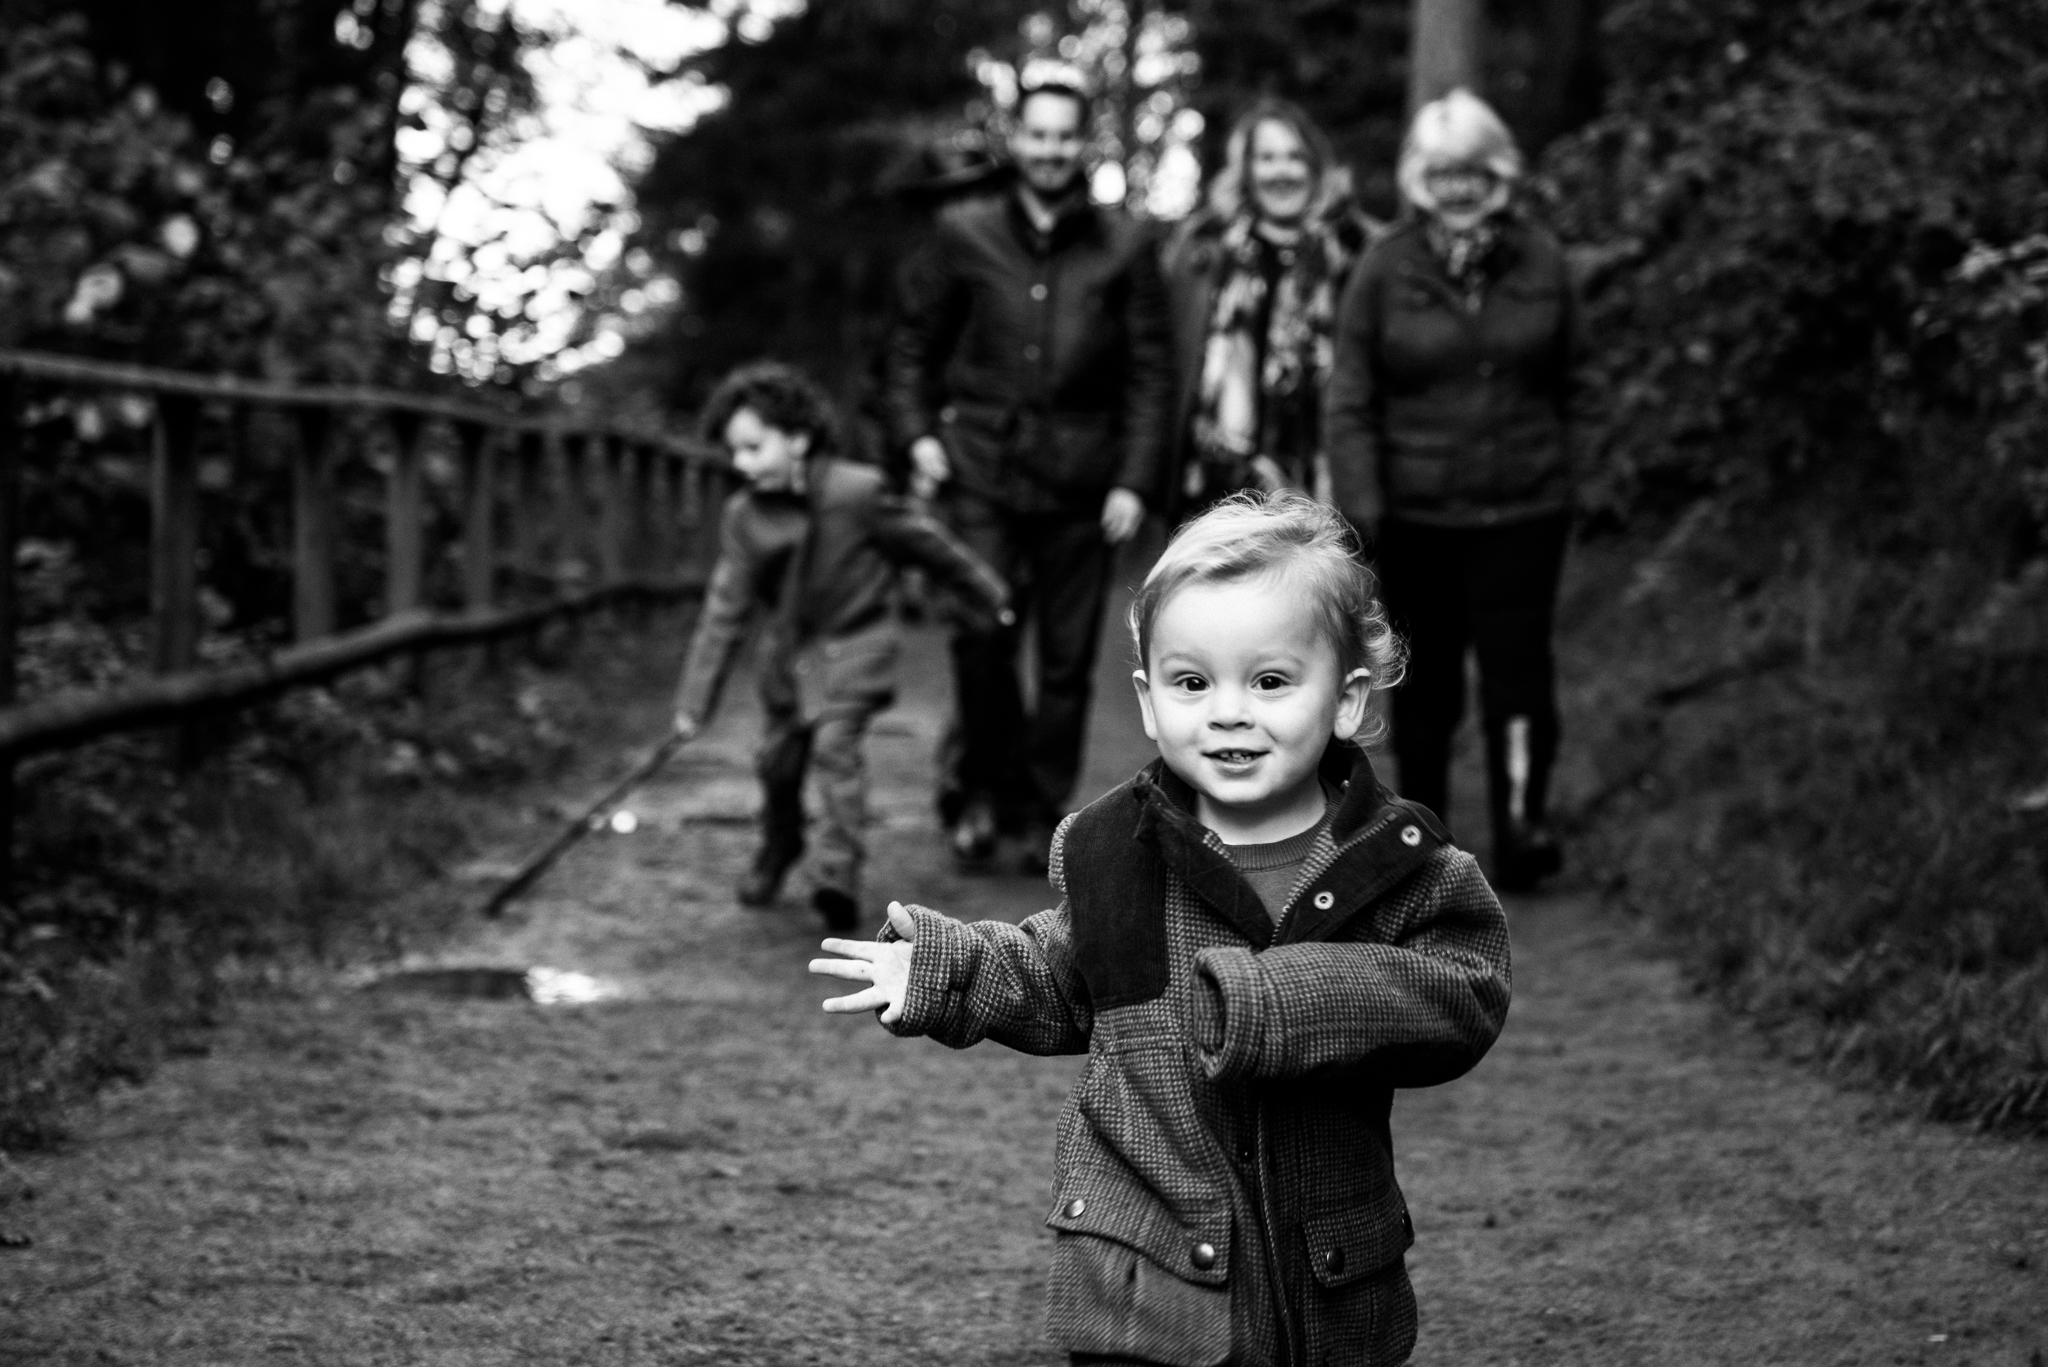 Autumn Documentary Lifestyle Family Photography at Clent Hills, Worcestershire Country Park countryside outdoors nature - Jenny Harper-10.jpg